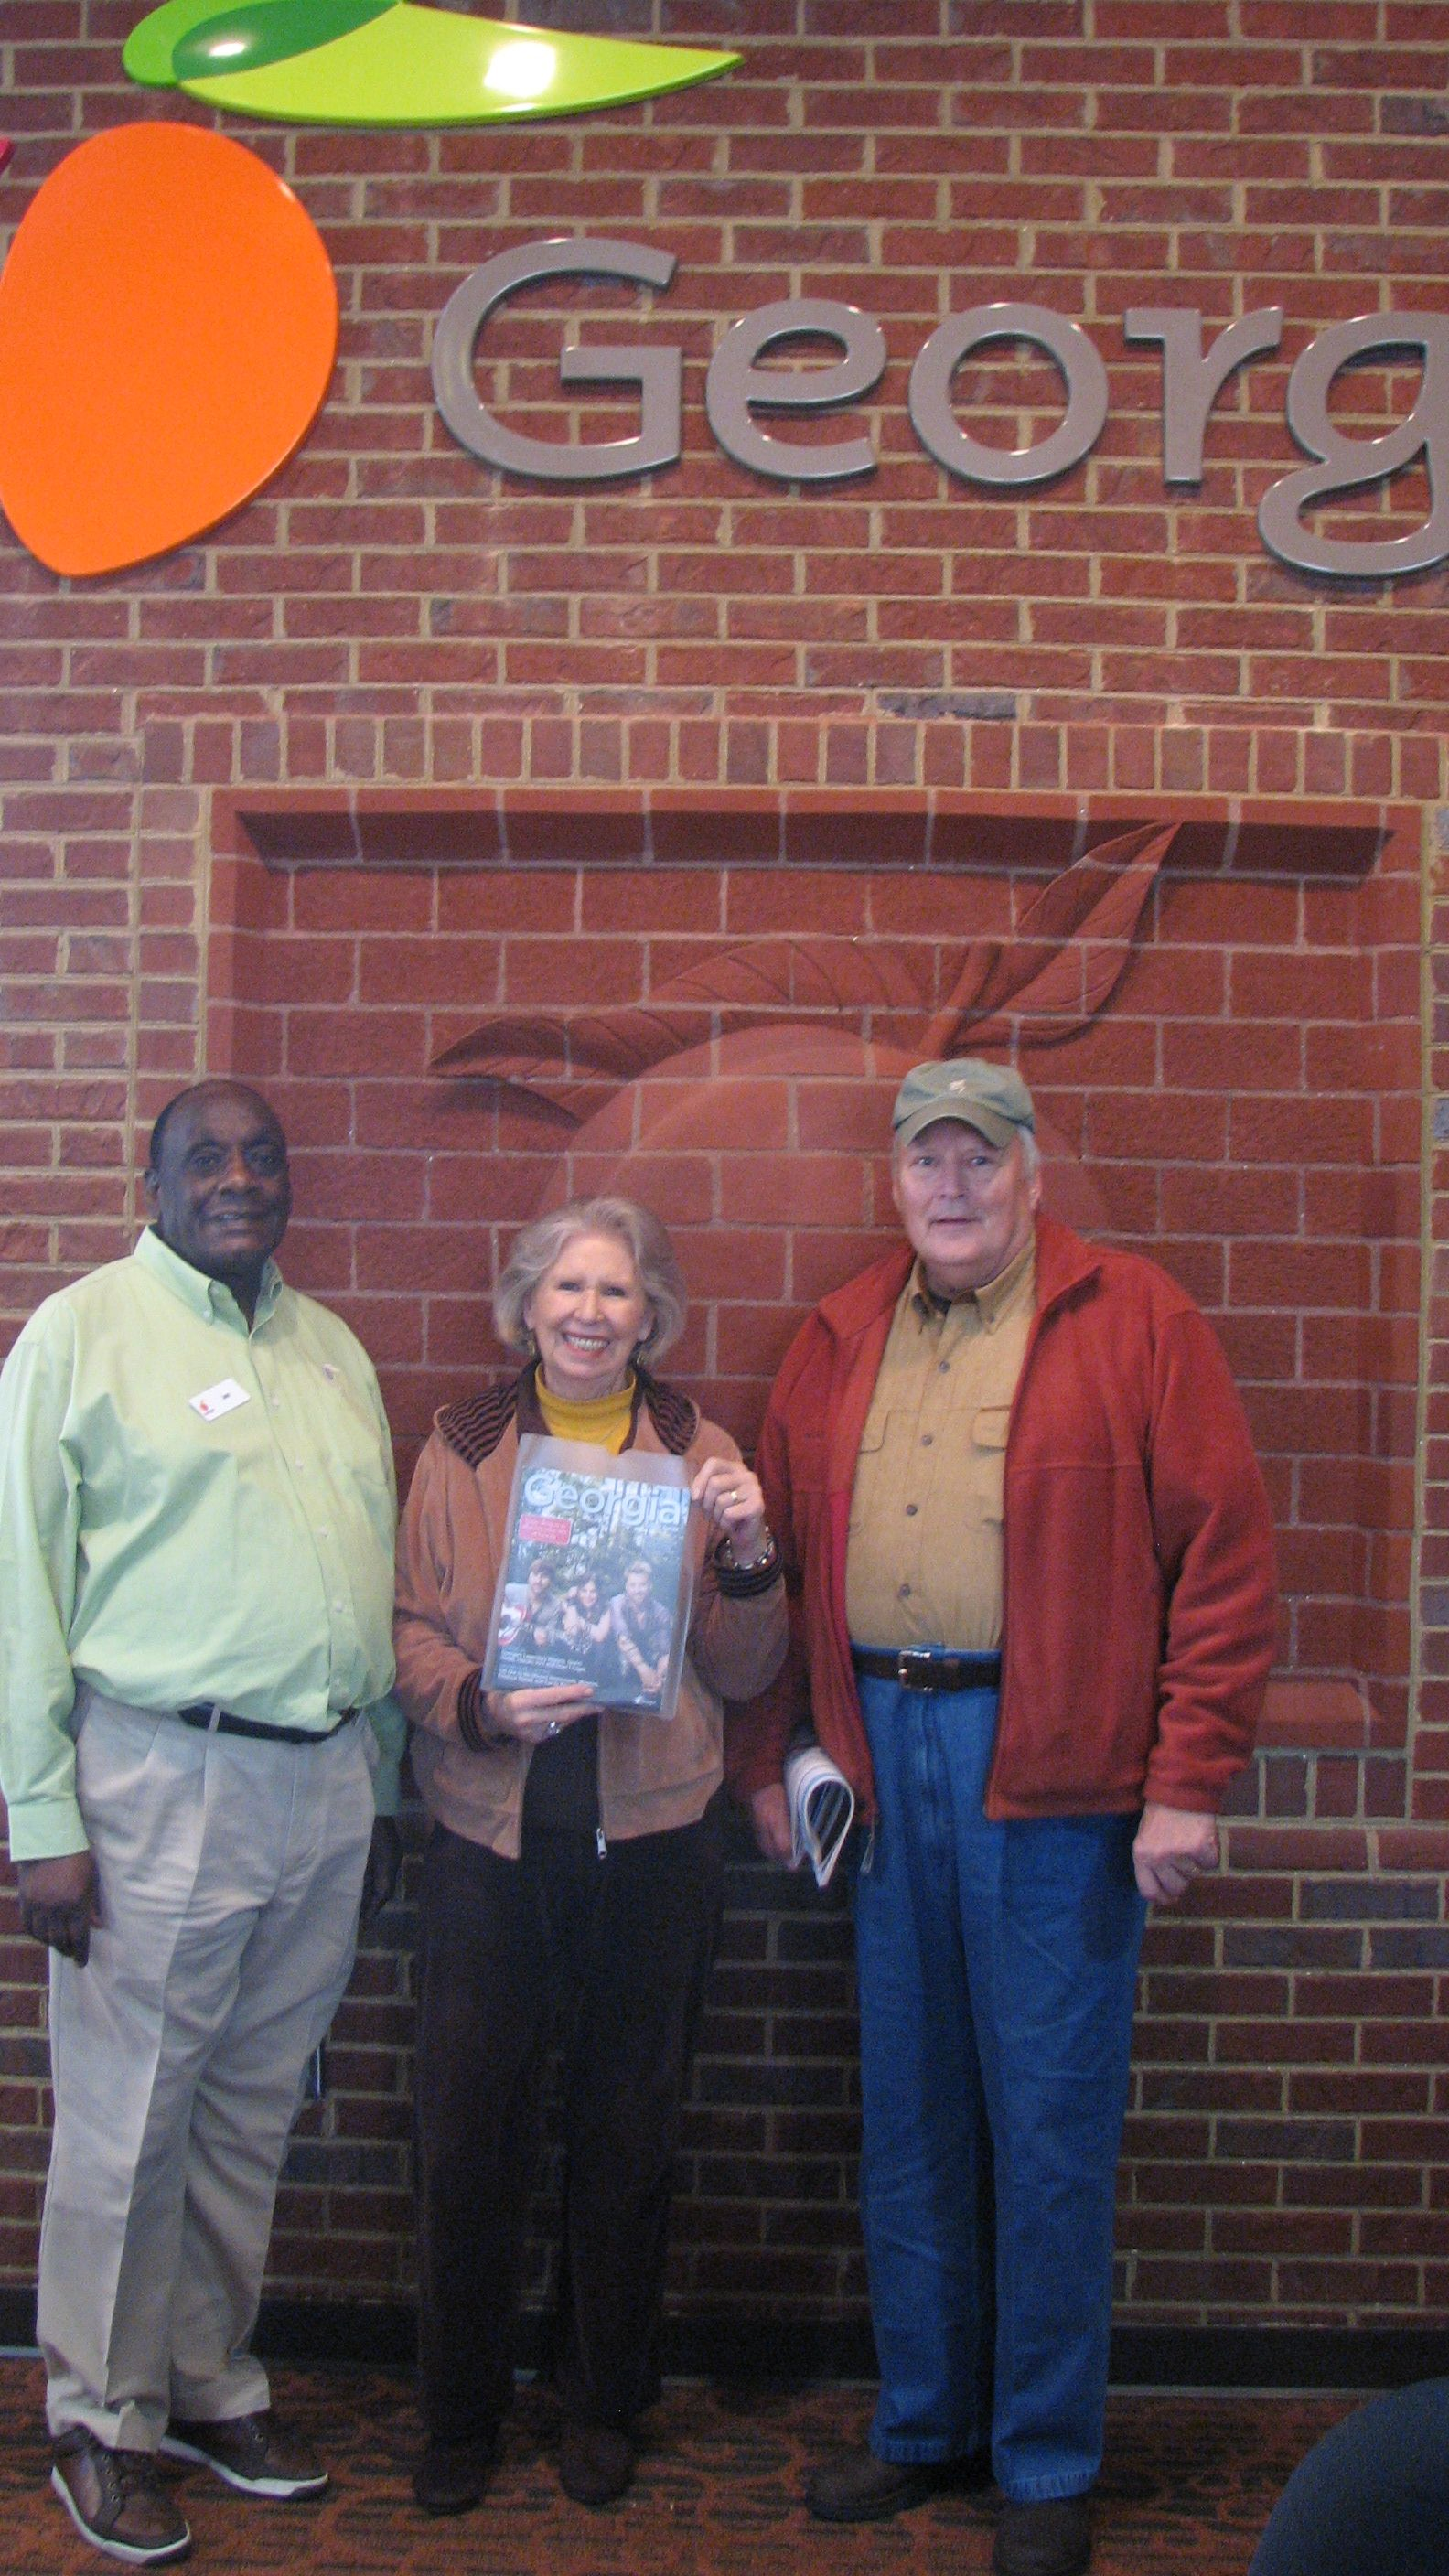 John and Judie from Lindak, South Carolina were the lucky winners of a 2012 Georgia Travel Guide signed by Lady Antebellum when they stopped by the Georgia Visitor Information Center in Augusta, located on I-20.